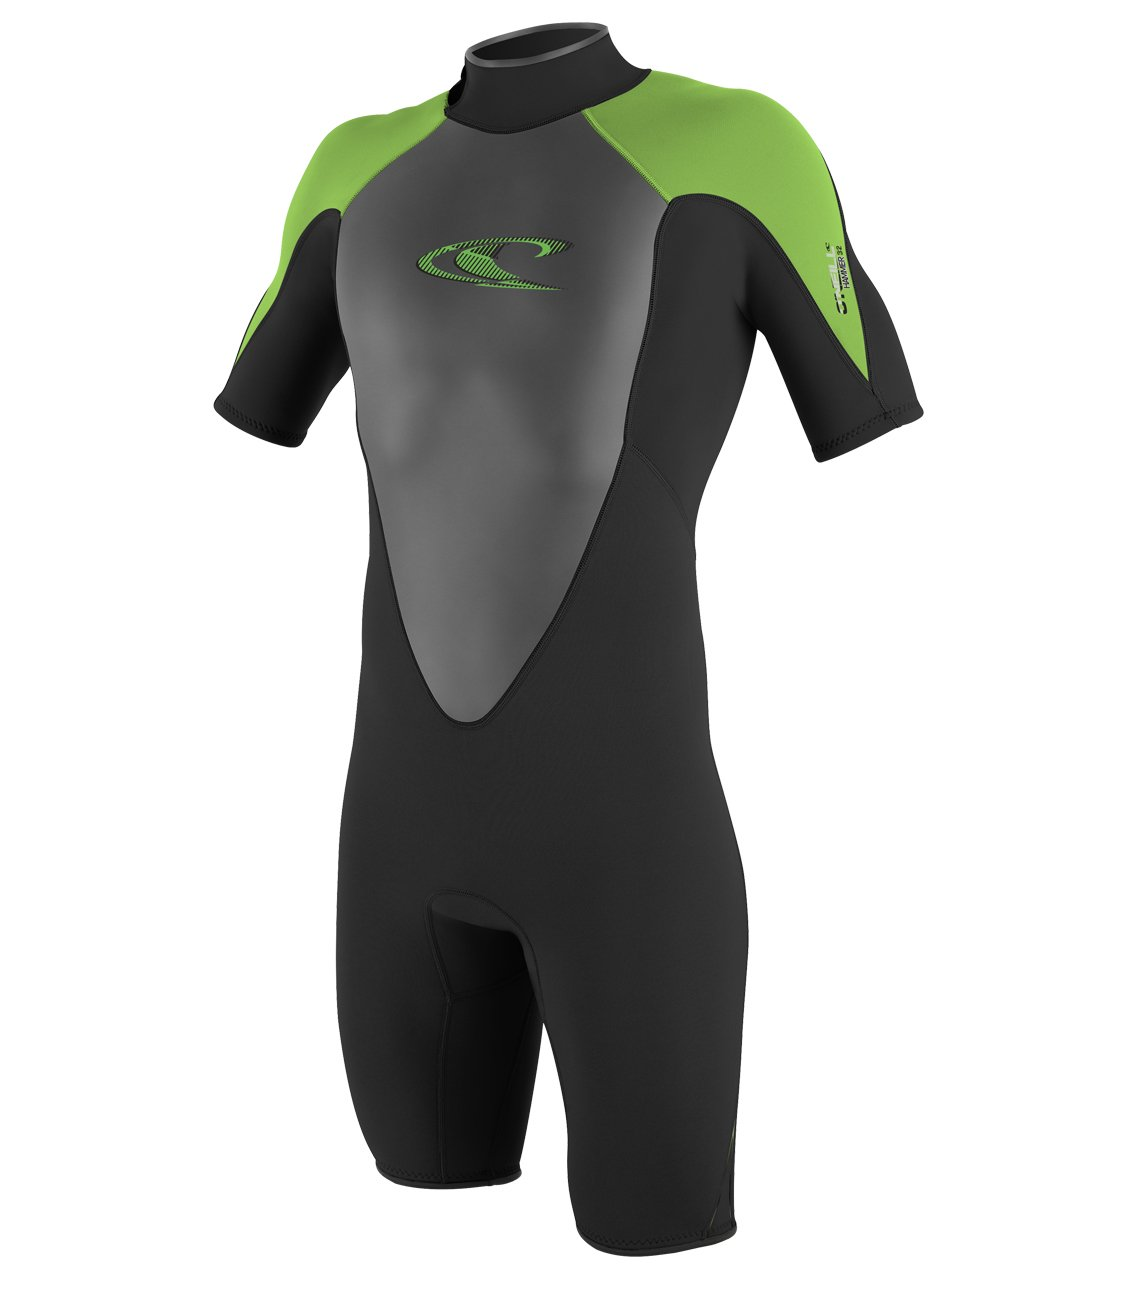 O'Neill Youth Hammer 2mm Short Sleeve Back Zip Spring Wetsuit, Navy/Dayglo/Graphite, 4